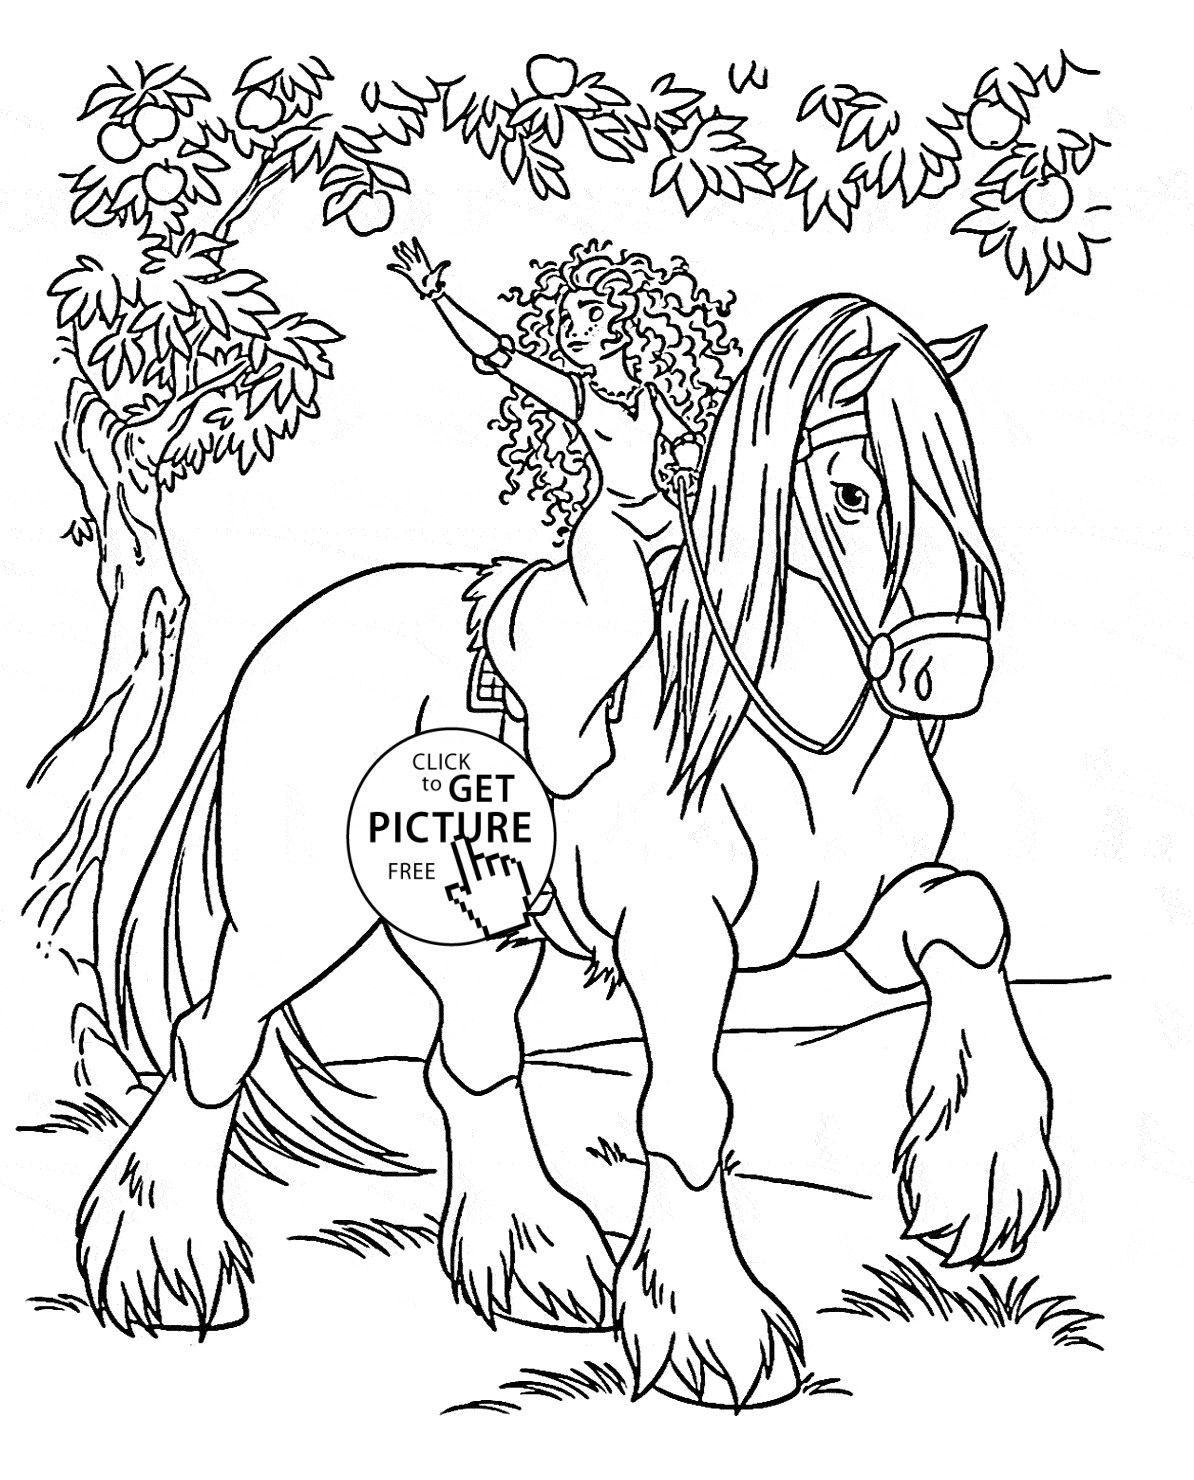 Princess Riding A Unicorn Coloring Page From The Thousands Of Photographs On The Horse Coloring Pages Disney Princess Coloring Pages Princess Coloring Pages